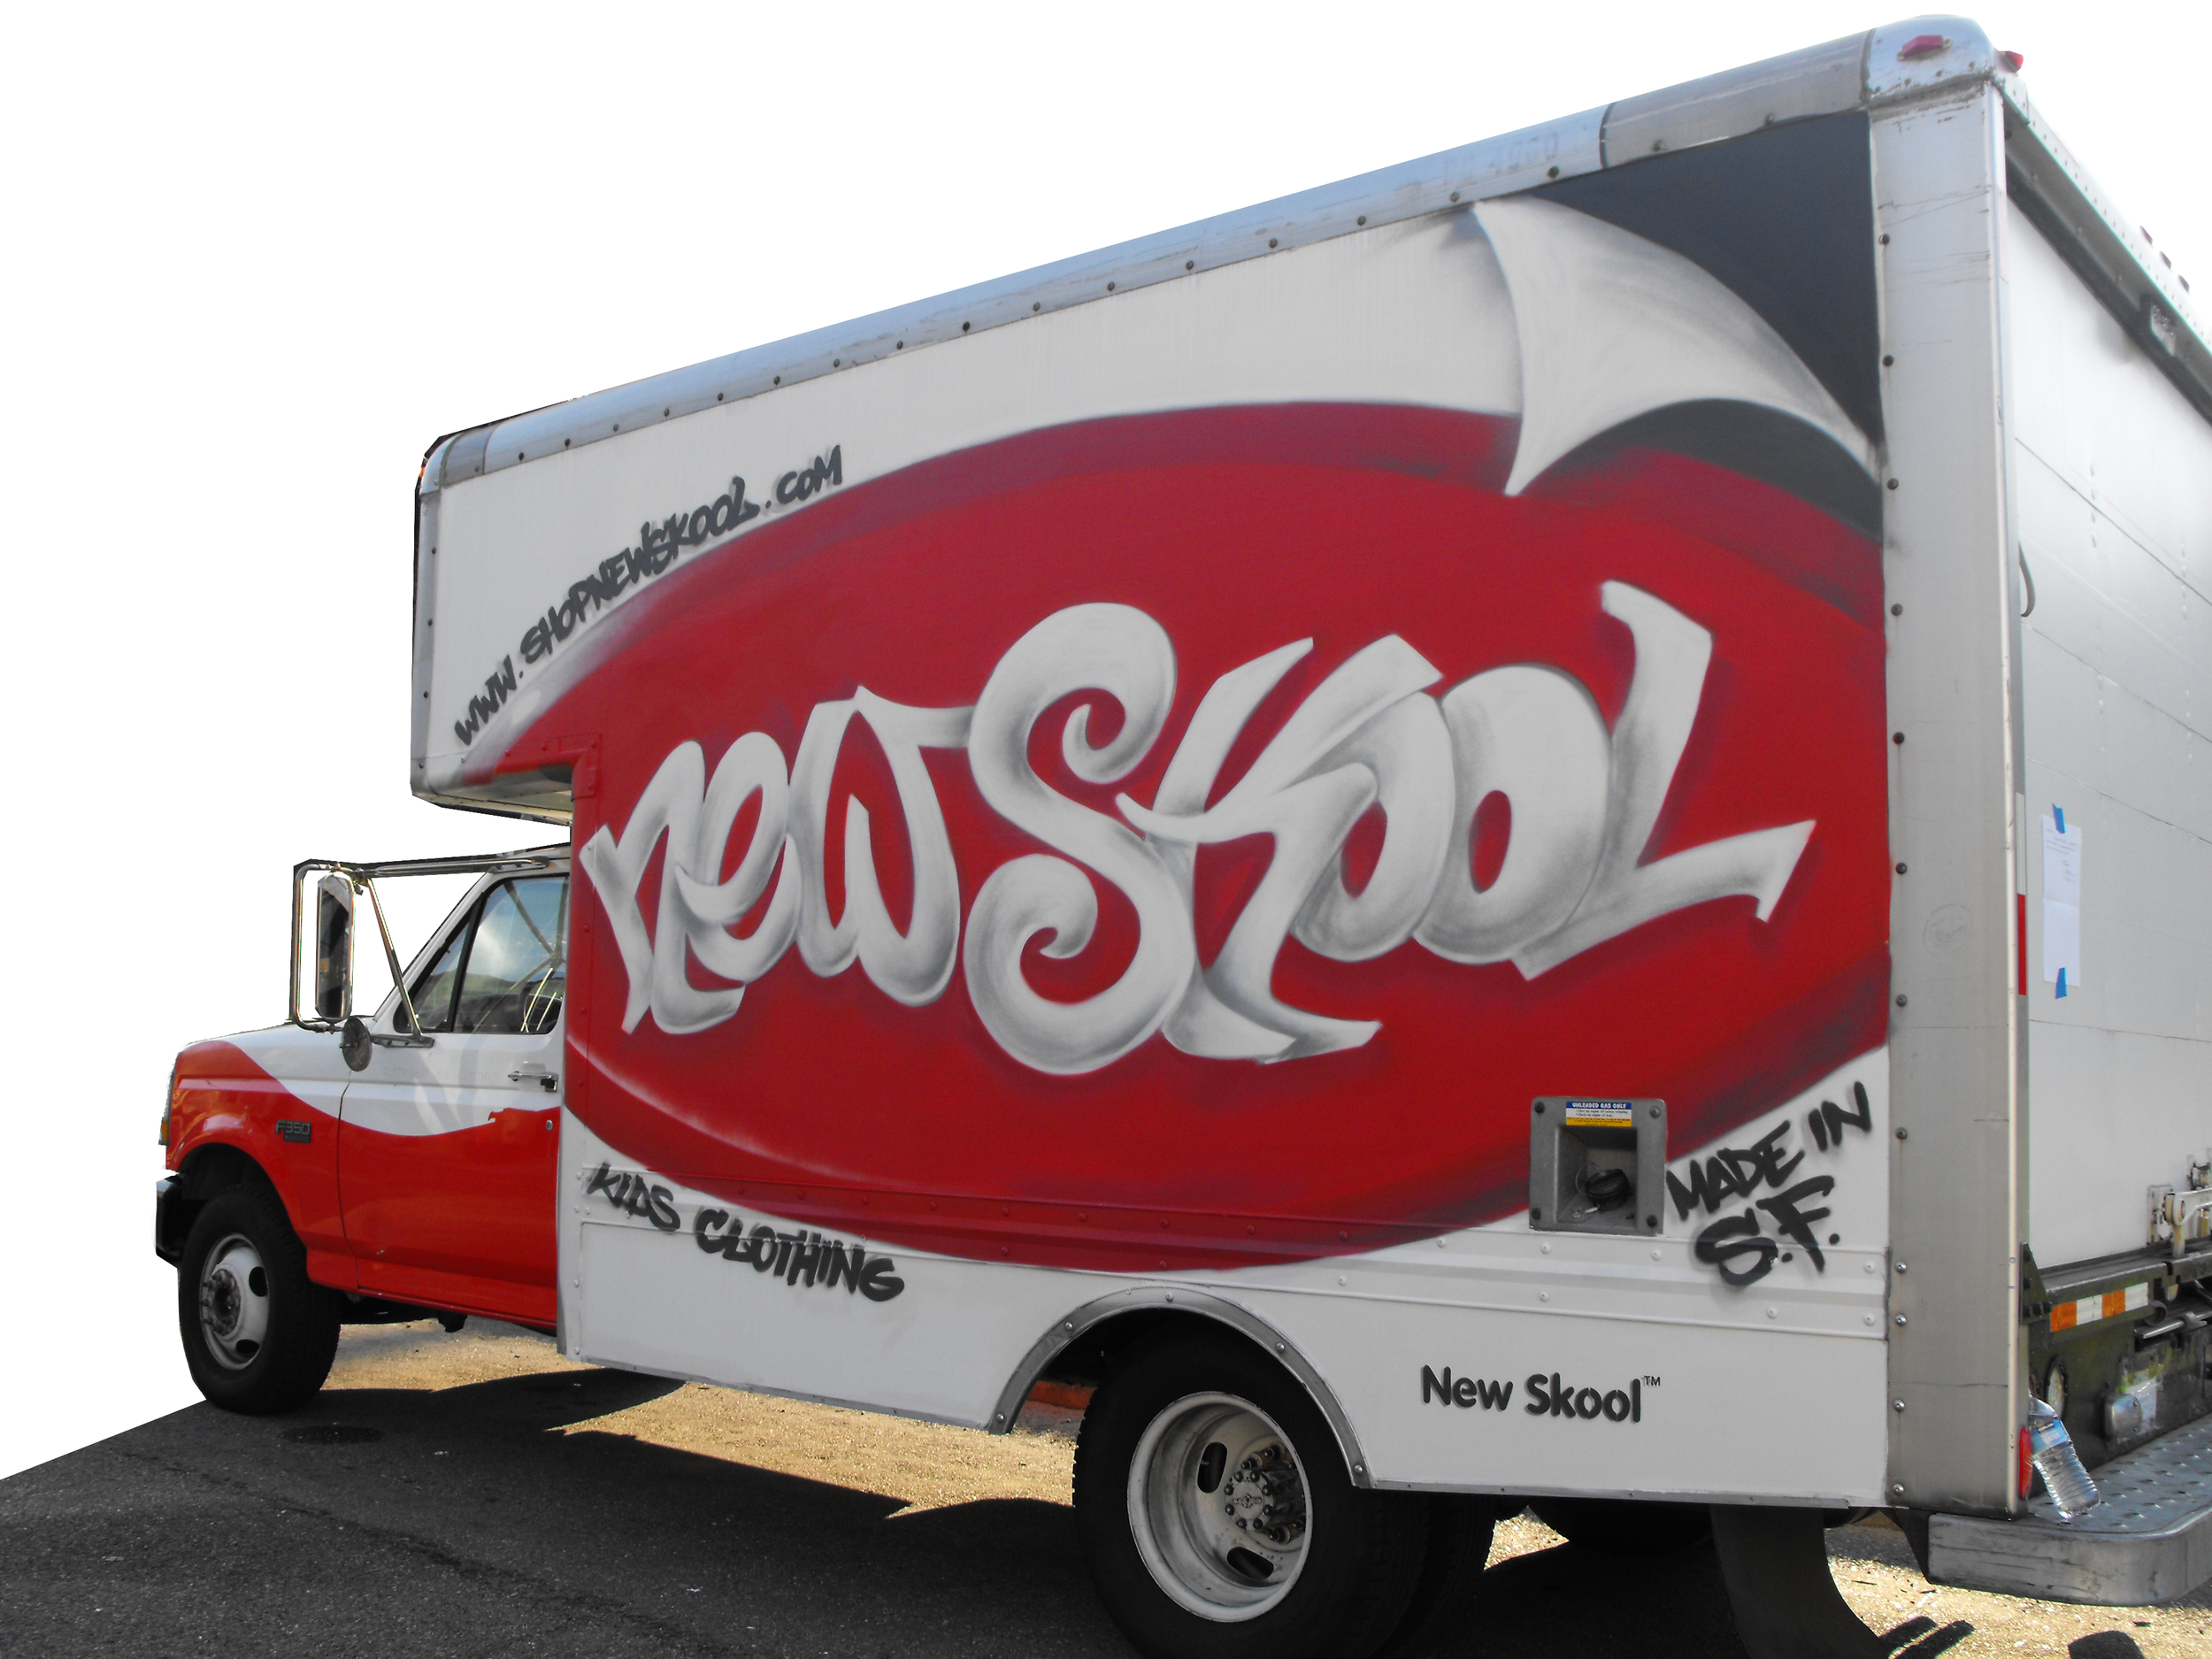 New Skool Promo Truck Shout Out CA Marketing